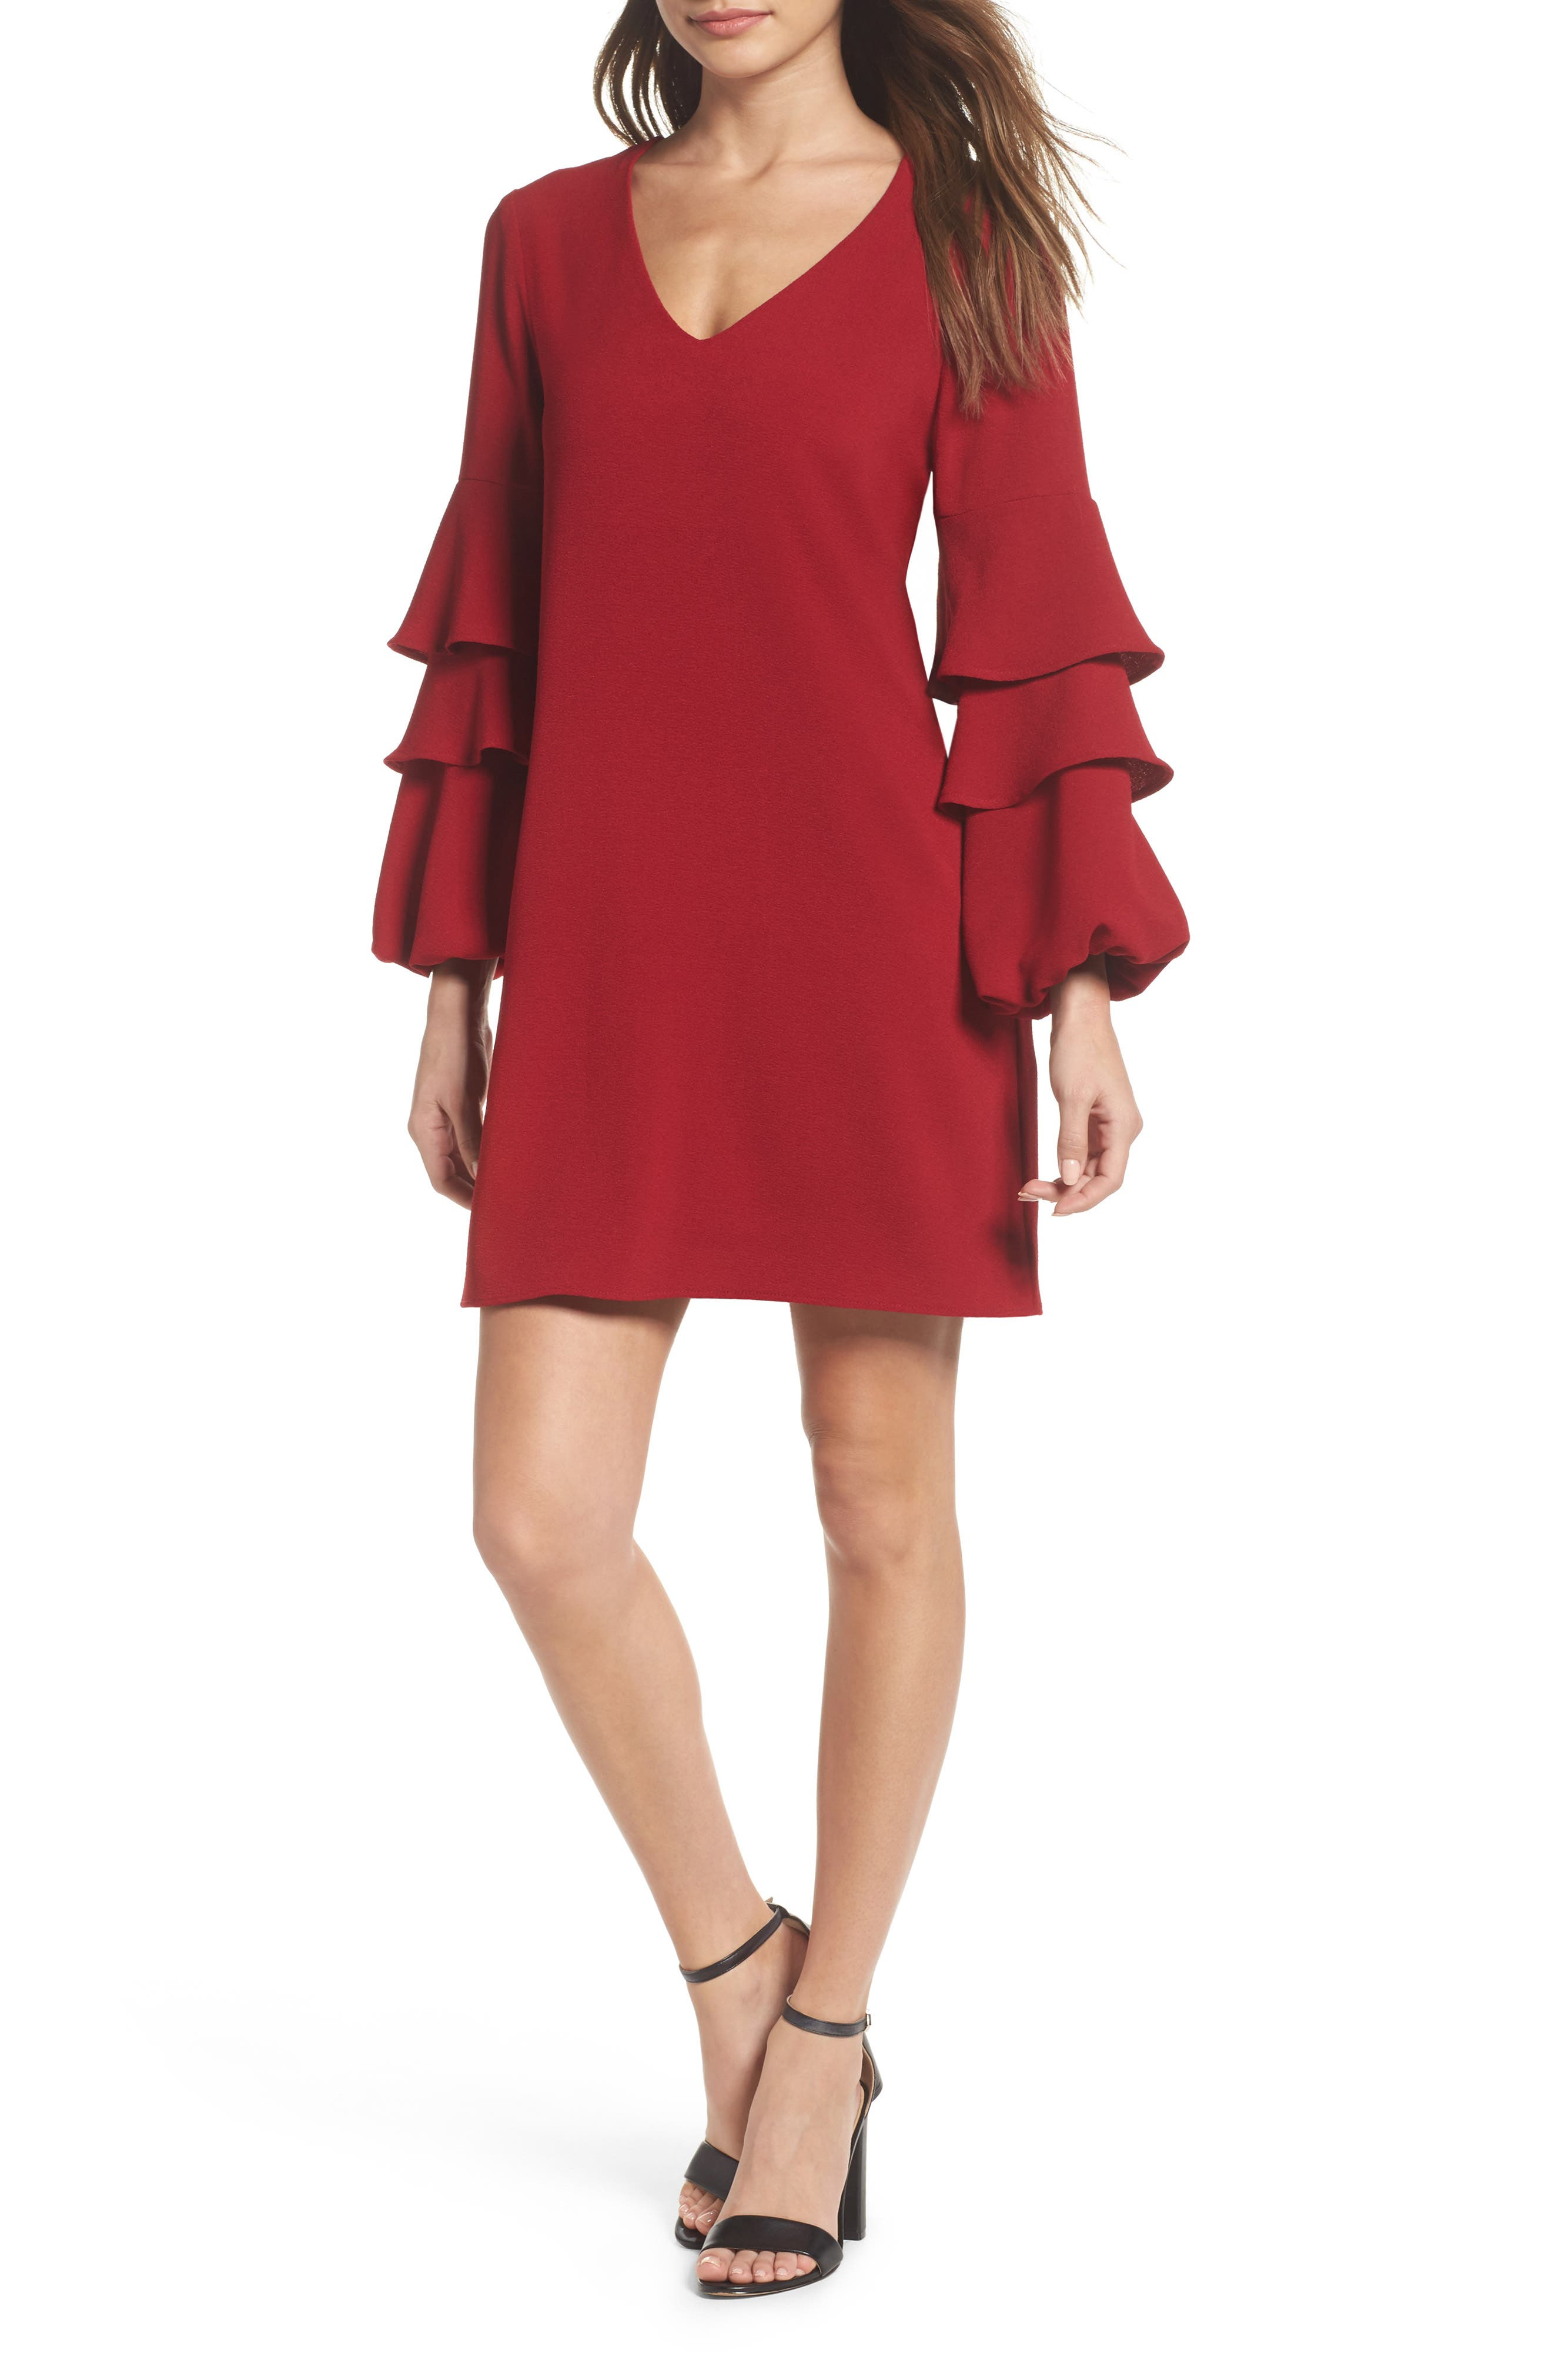 Alternate Image 1 Selected - Charles Henry Tiered Ruffle Sleeve Dress (Regular & Petite)